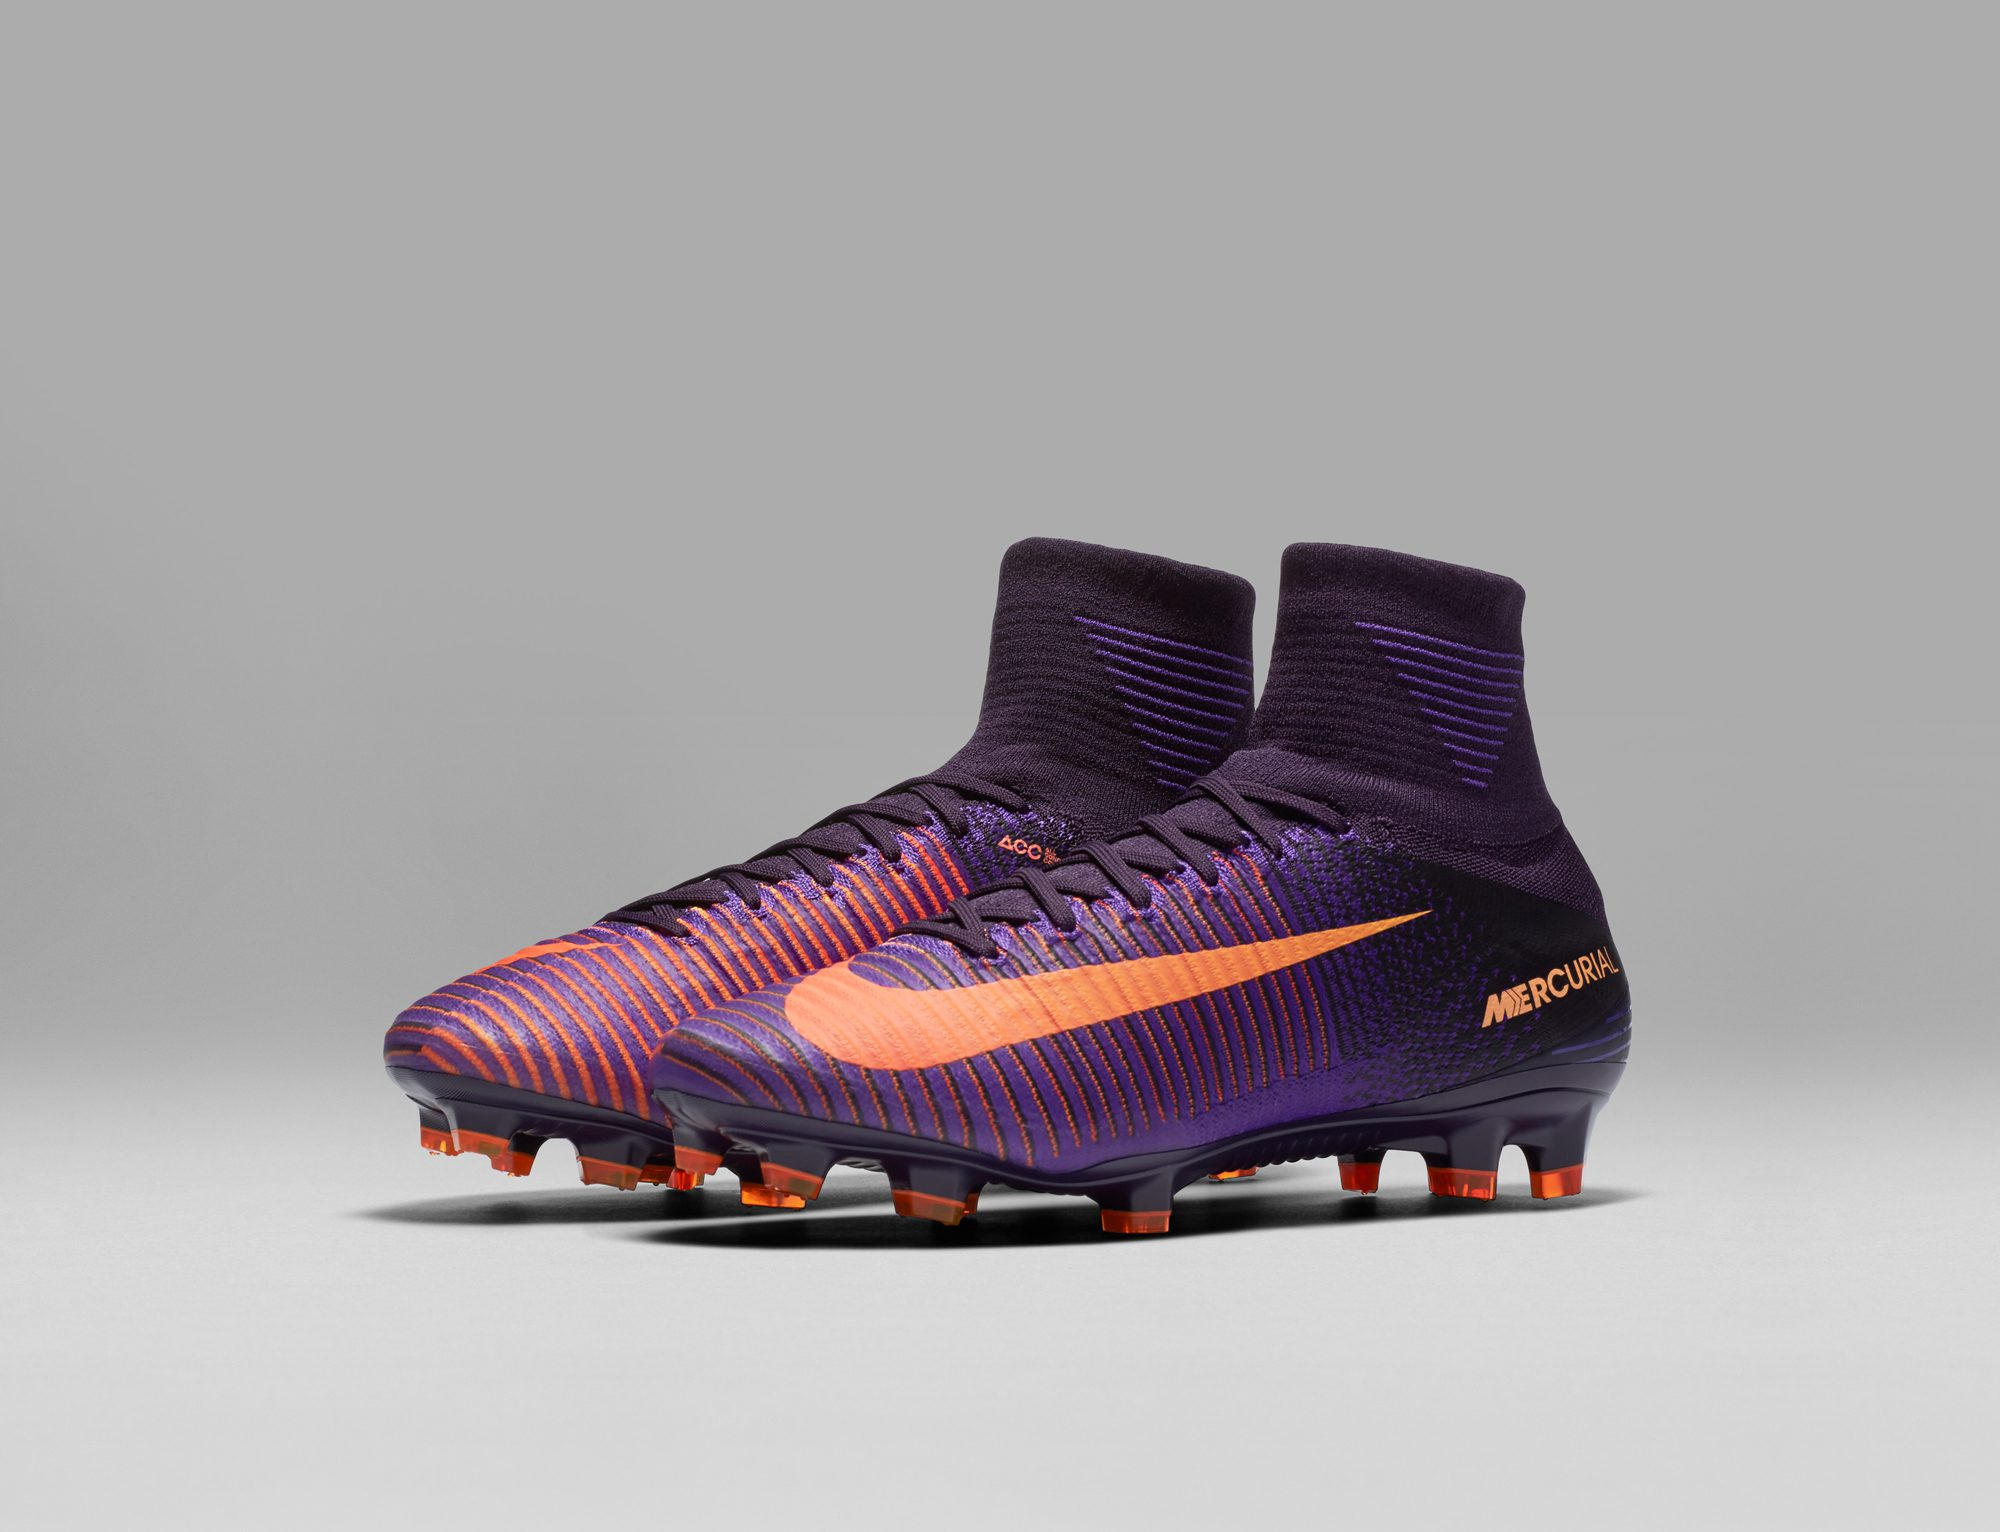 pretty nice 575e4 a70a5 Nike s fastest football boot, built for explosive speed.